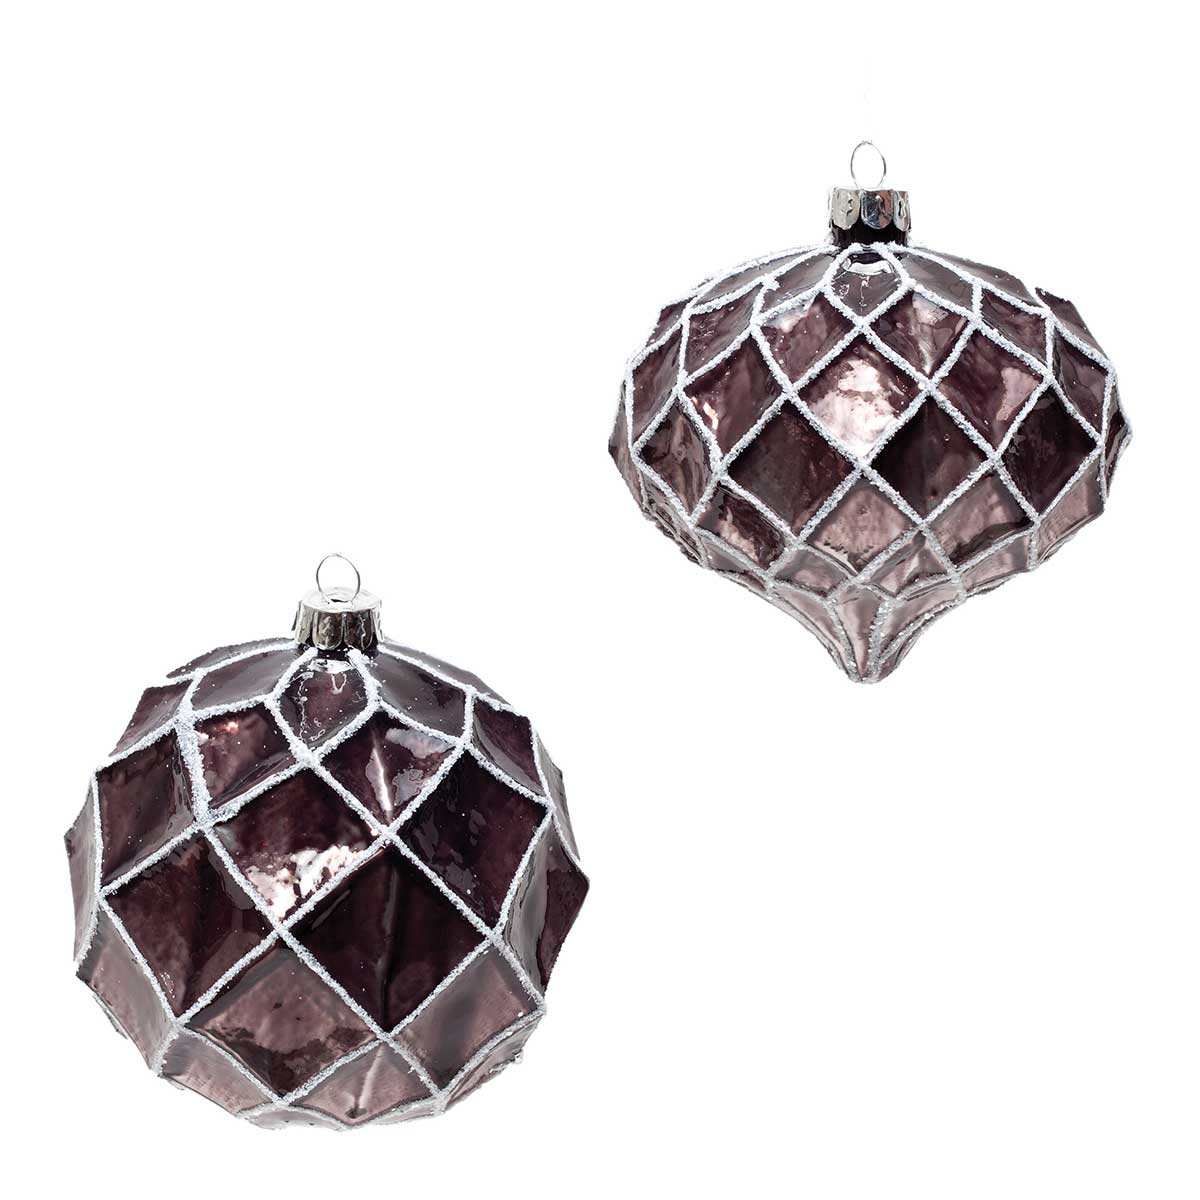 "TAUPE SHINY GLASS ORNAMENT 4"" BALL/KISMET"